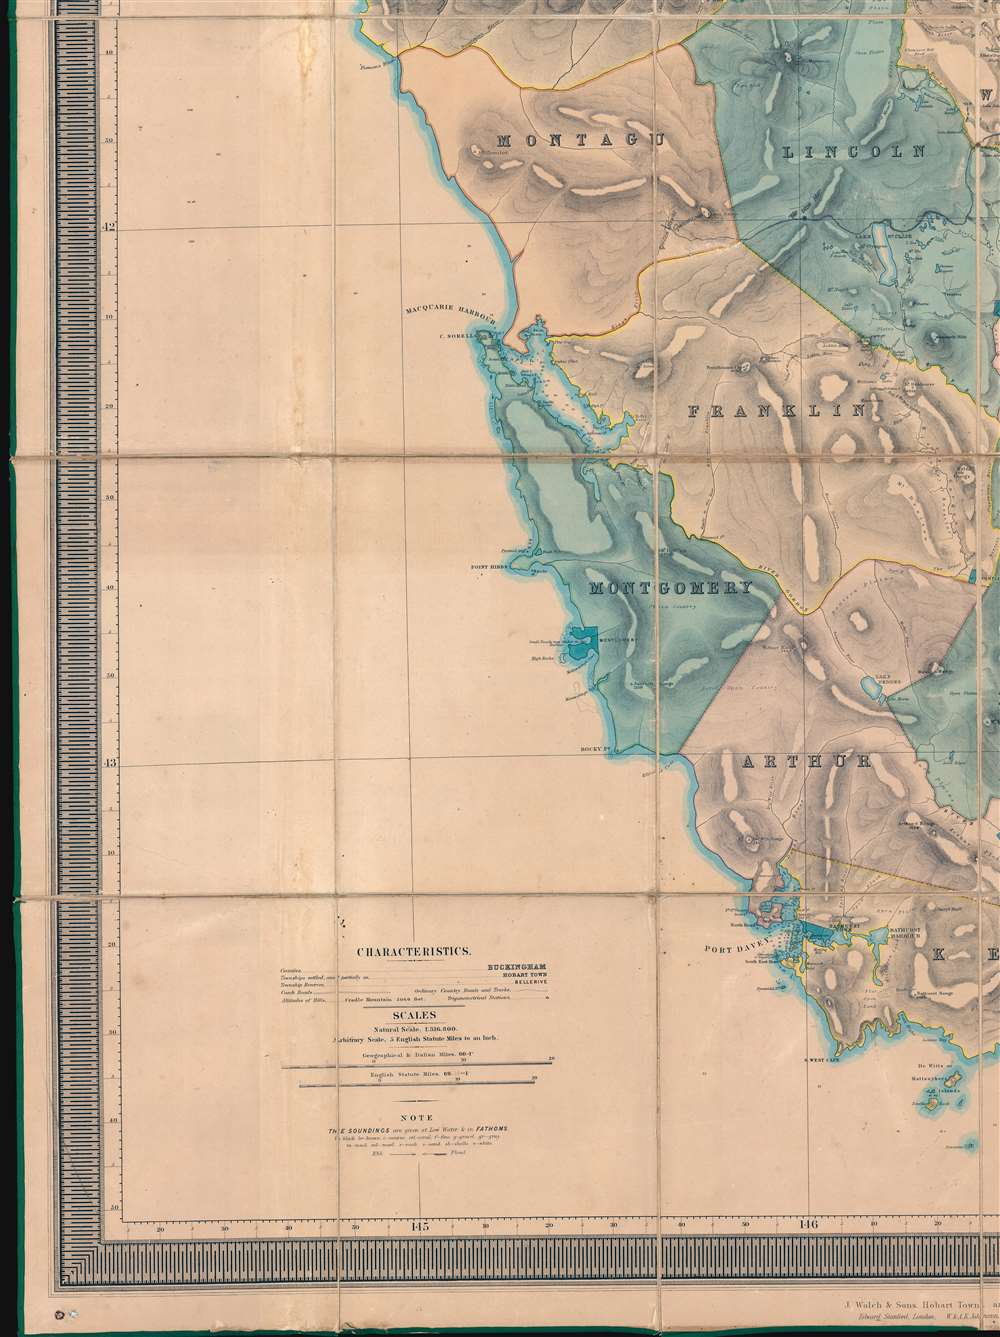 This Map of Tasmania in 1859, Sir Henry Edward Fox Young Knight Companion of the Most Honorable Order of the Bath Being Governor in Chief, and teh Honble. Francis Smigh Attorney General being Premier is dedicated to his Excellency and the Parliament by James Sprent, Surveyor General. - Alternate View 4